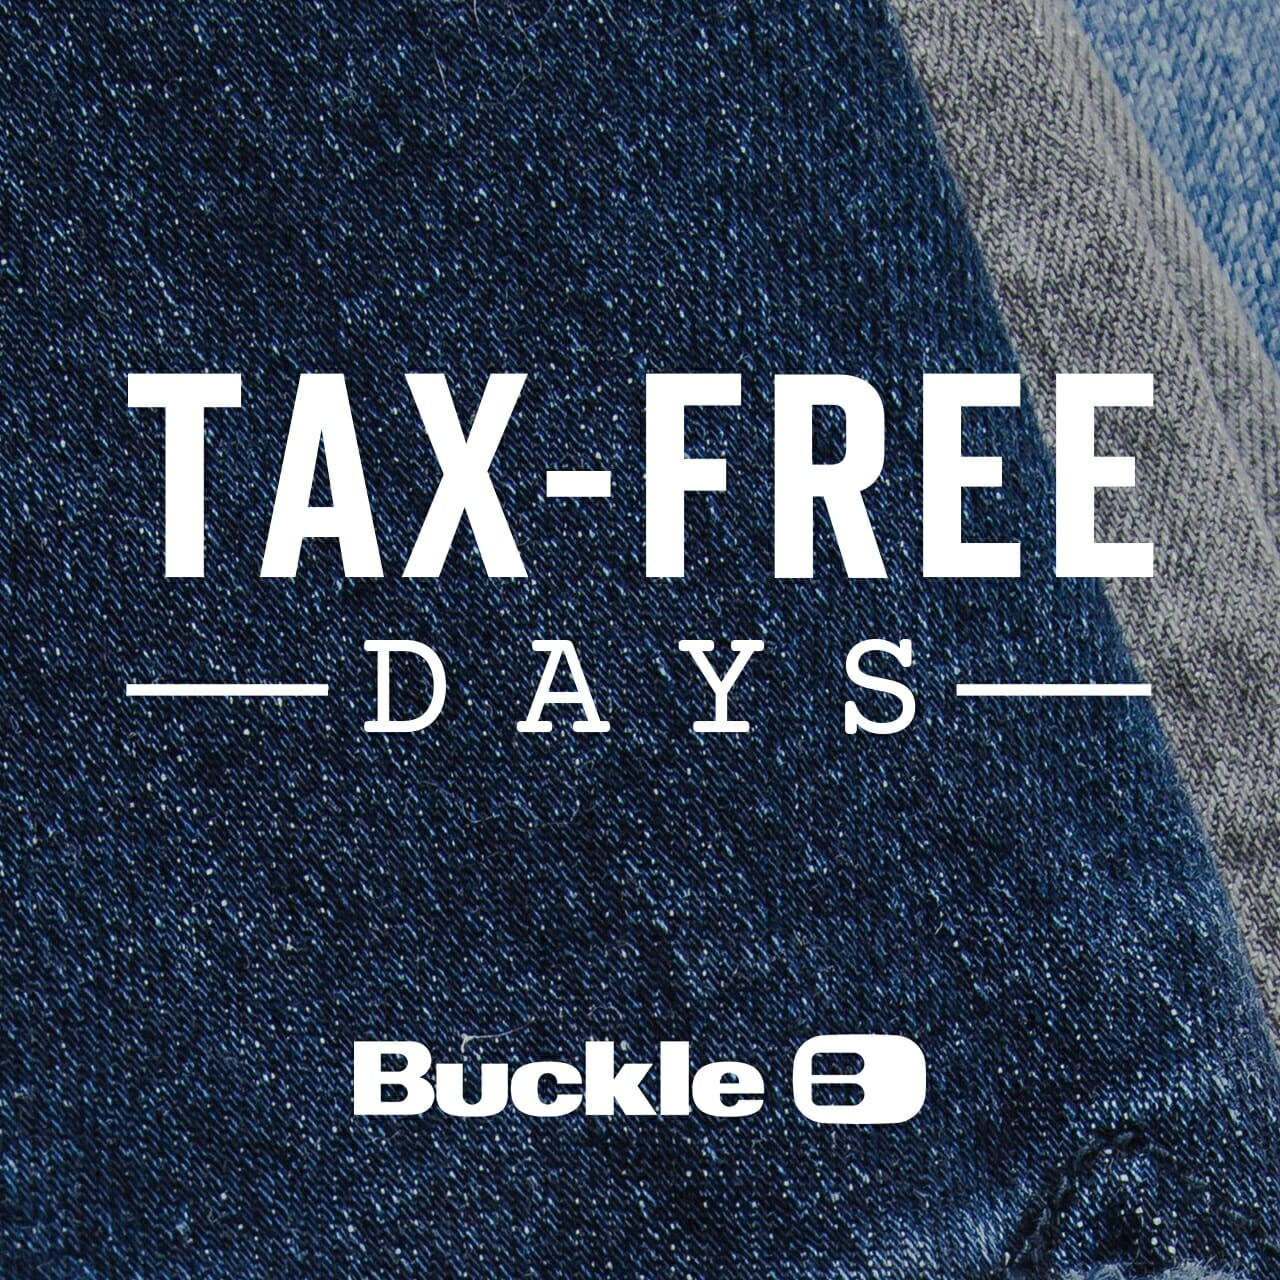 Tax Free Days at Buckle on a demin background with the Buckle logo